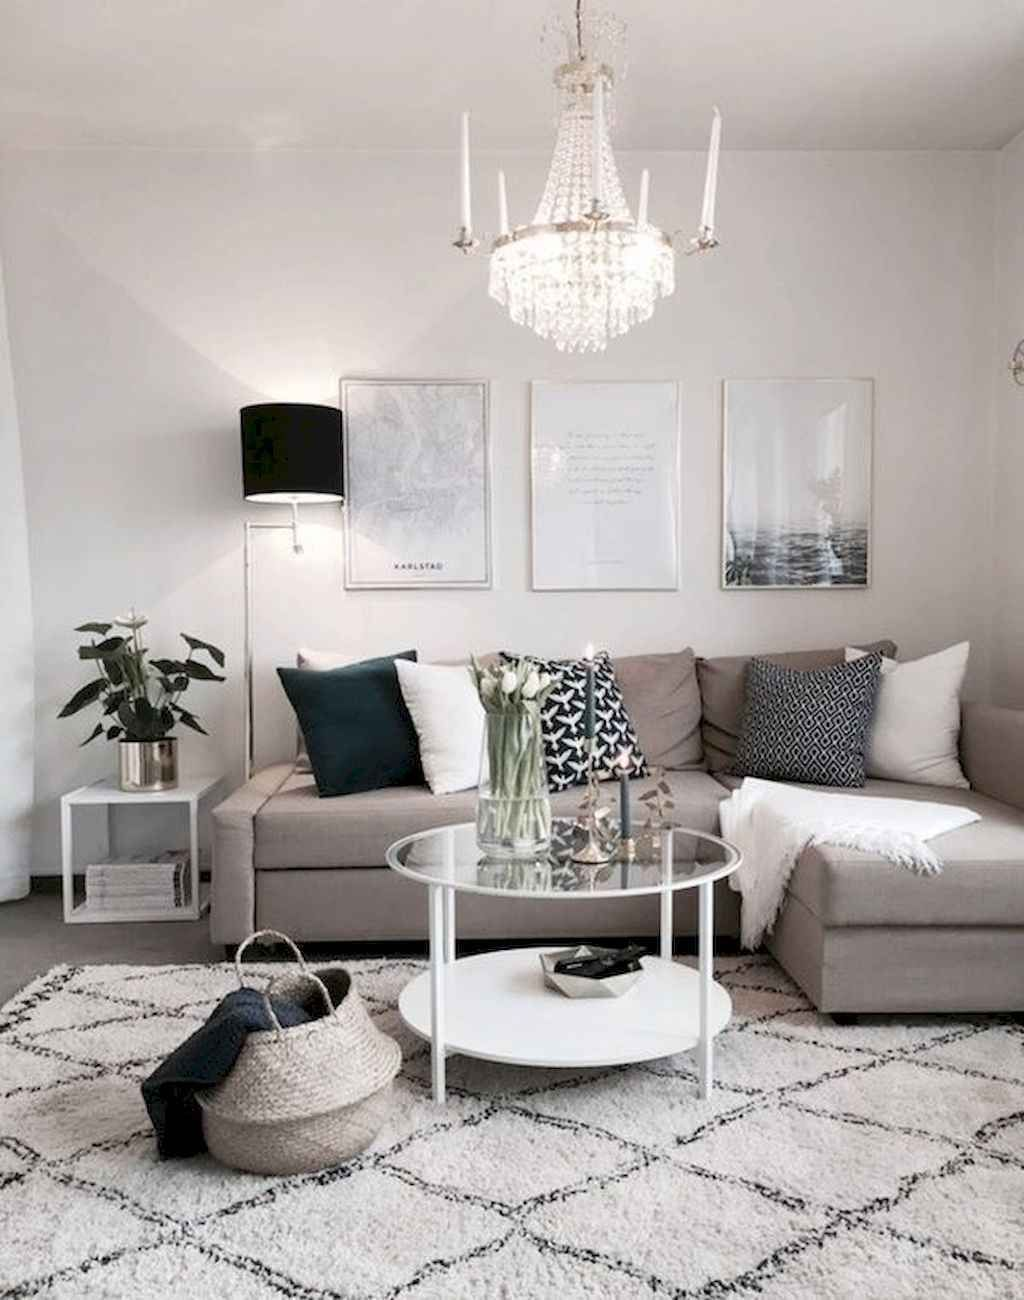 33 Awesome Small Space Living Room Decor Ideas Small Living Room Decor Small Modern Living Room Living Room Design Small Spaces